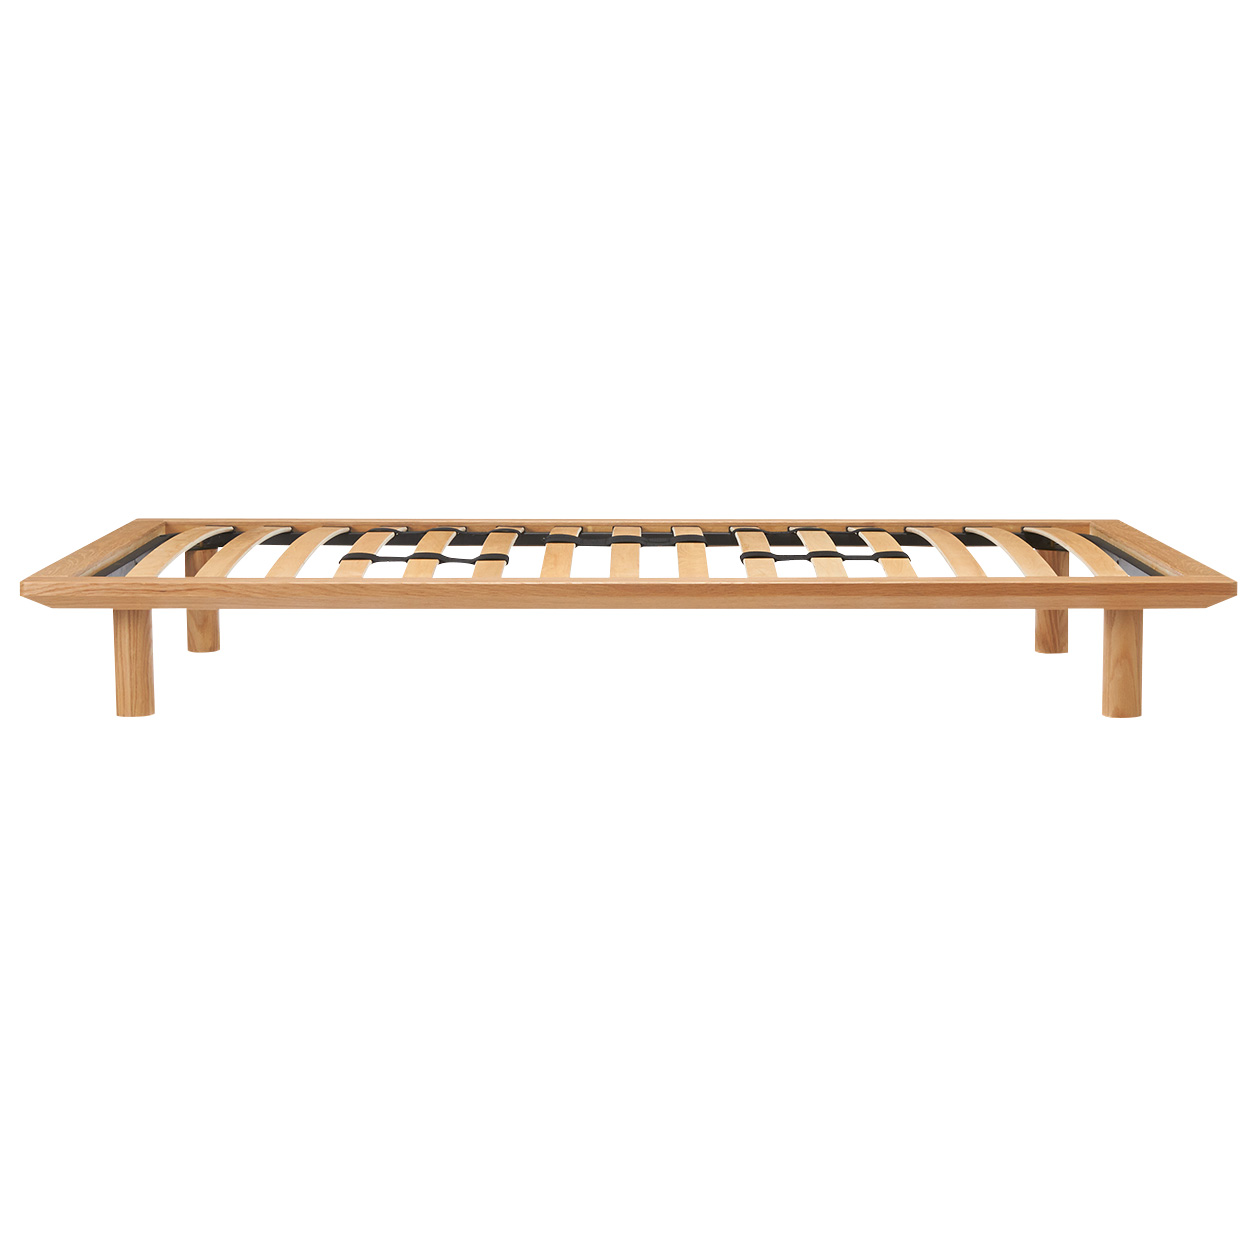 hk780000 oak wood bed frame single